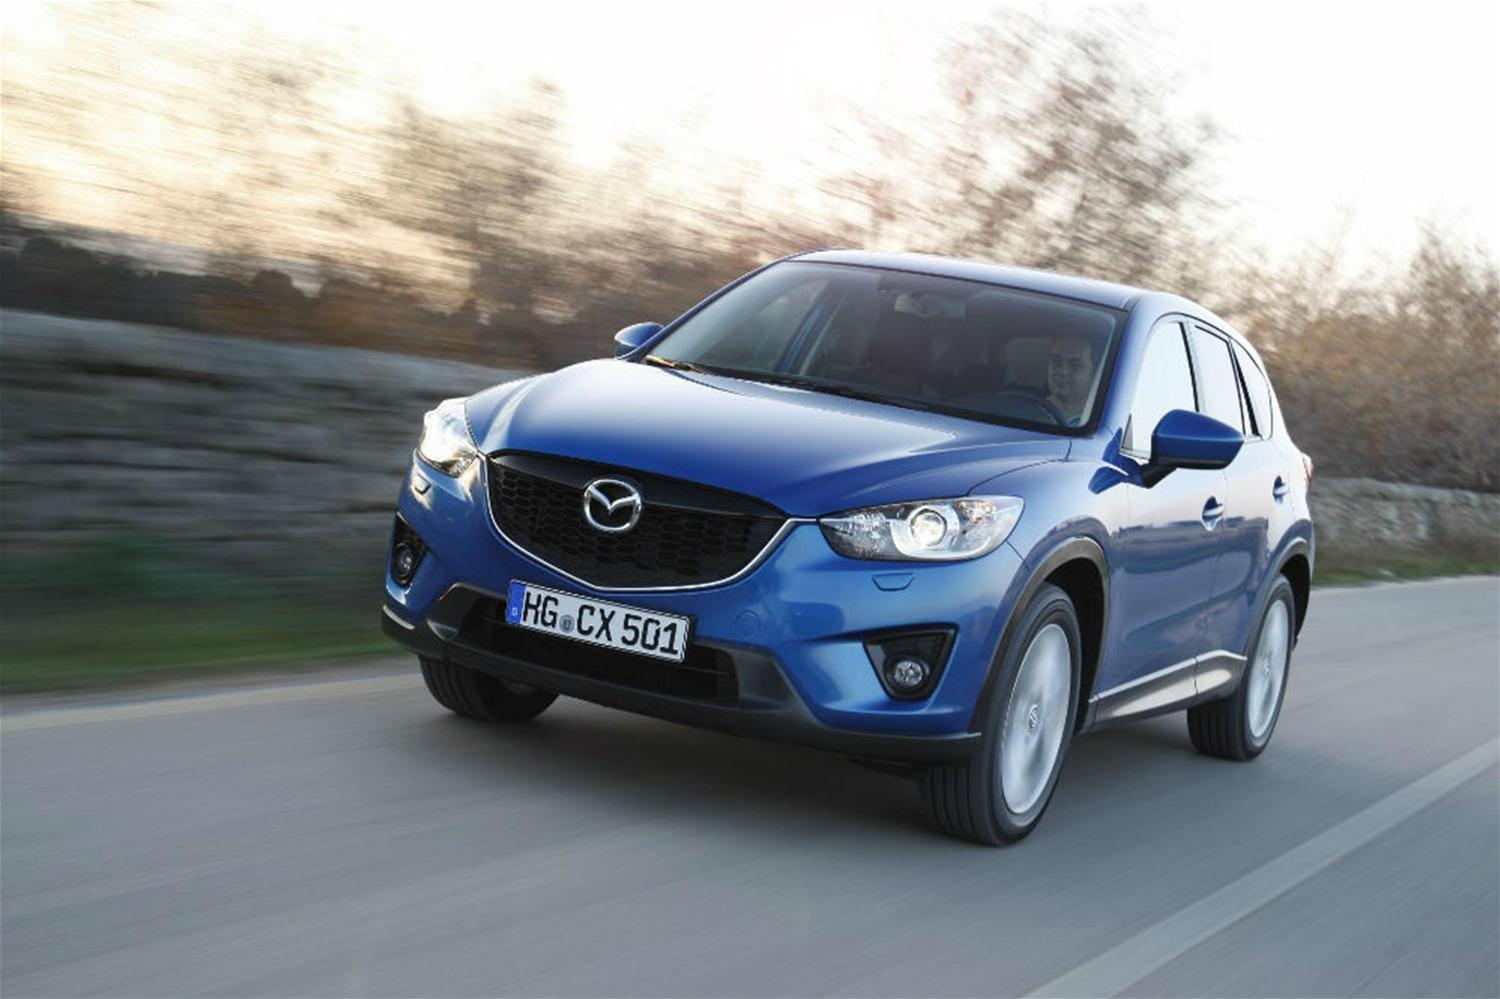 Mazda Perrys Blackburn Raises Charity Money at Special Event